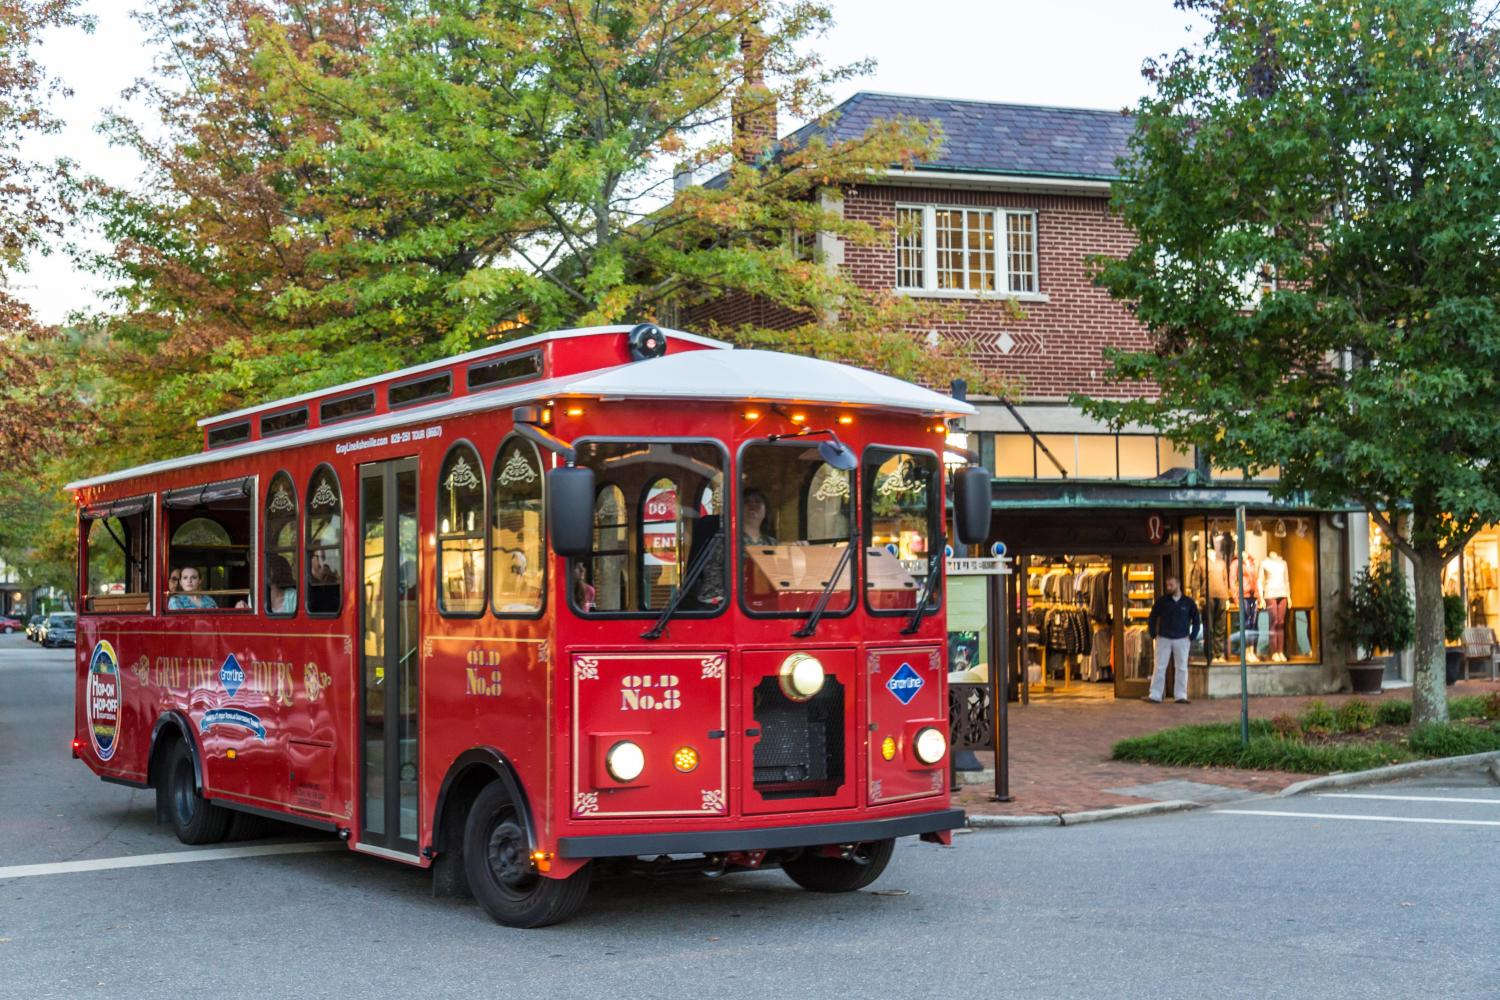 Greyline Trolley Tours